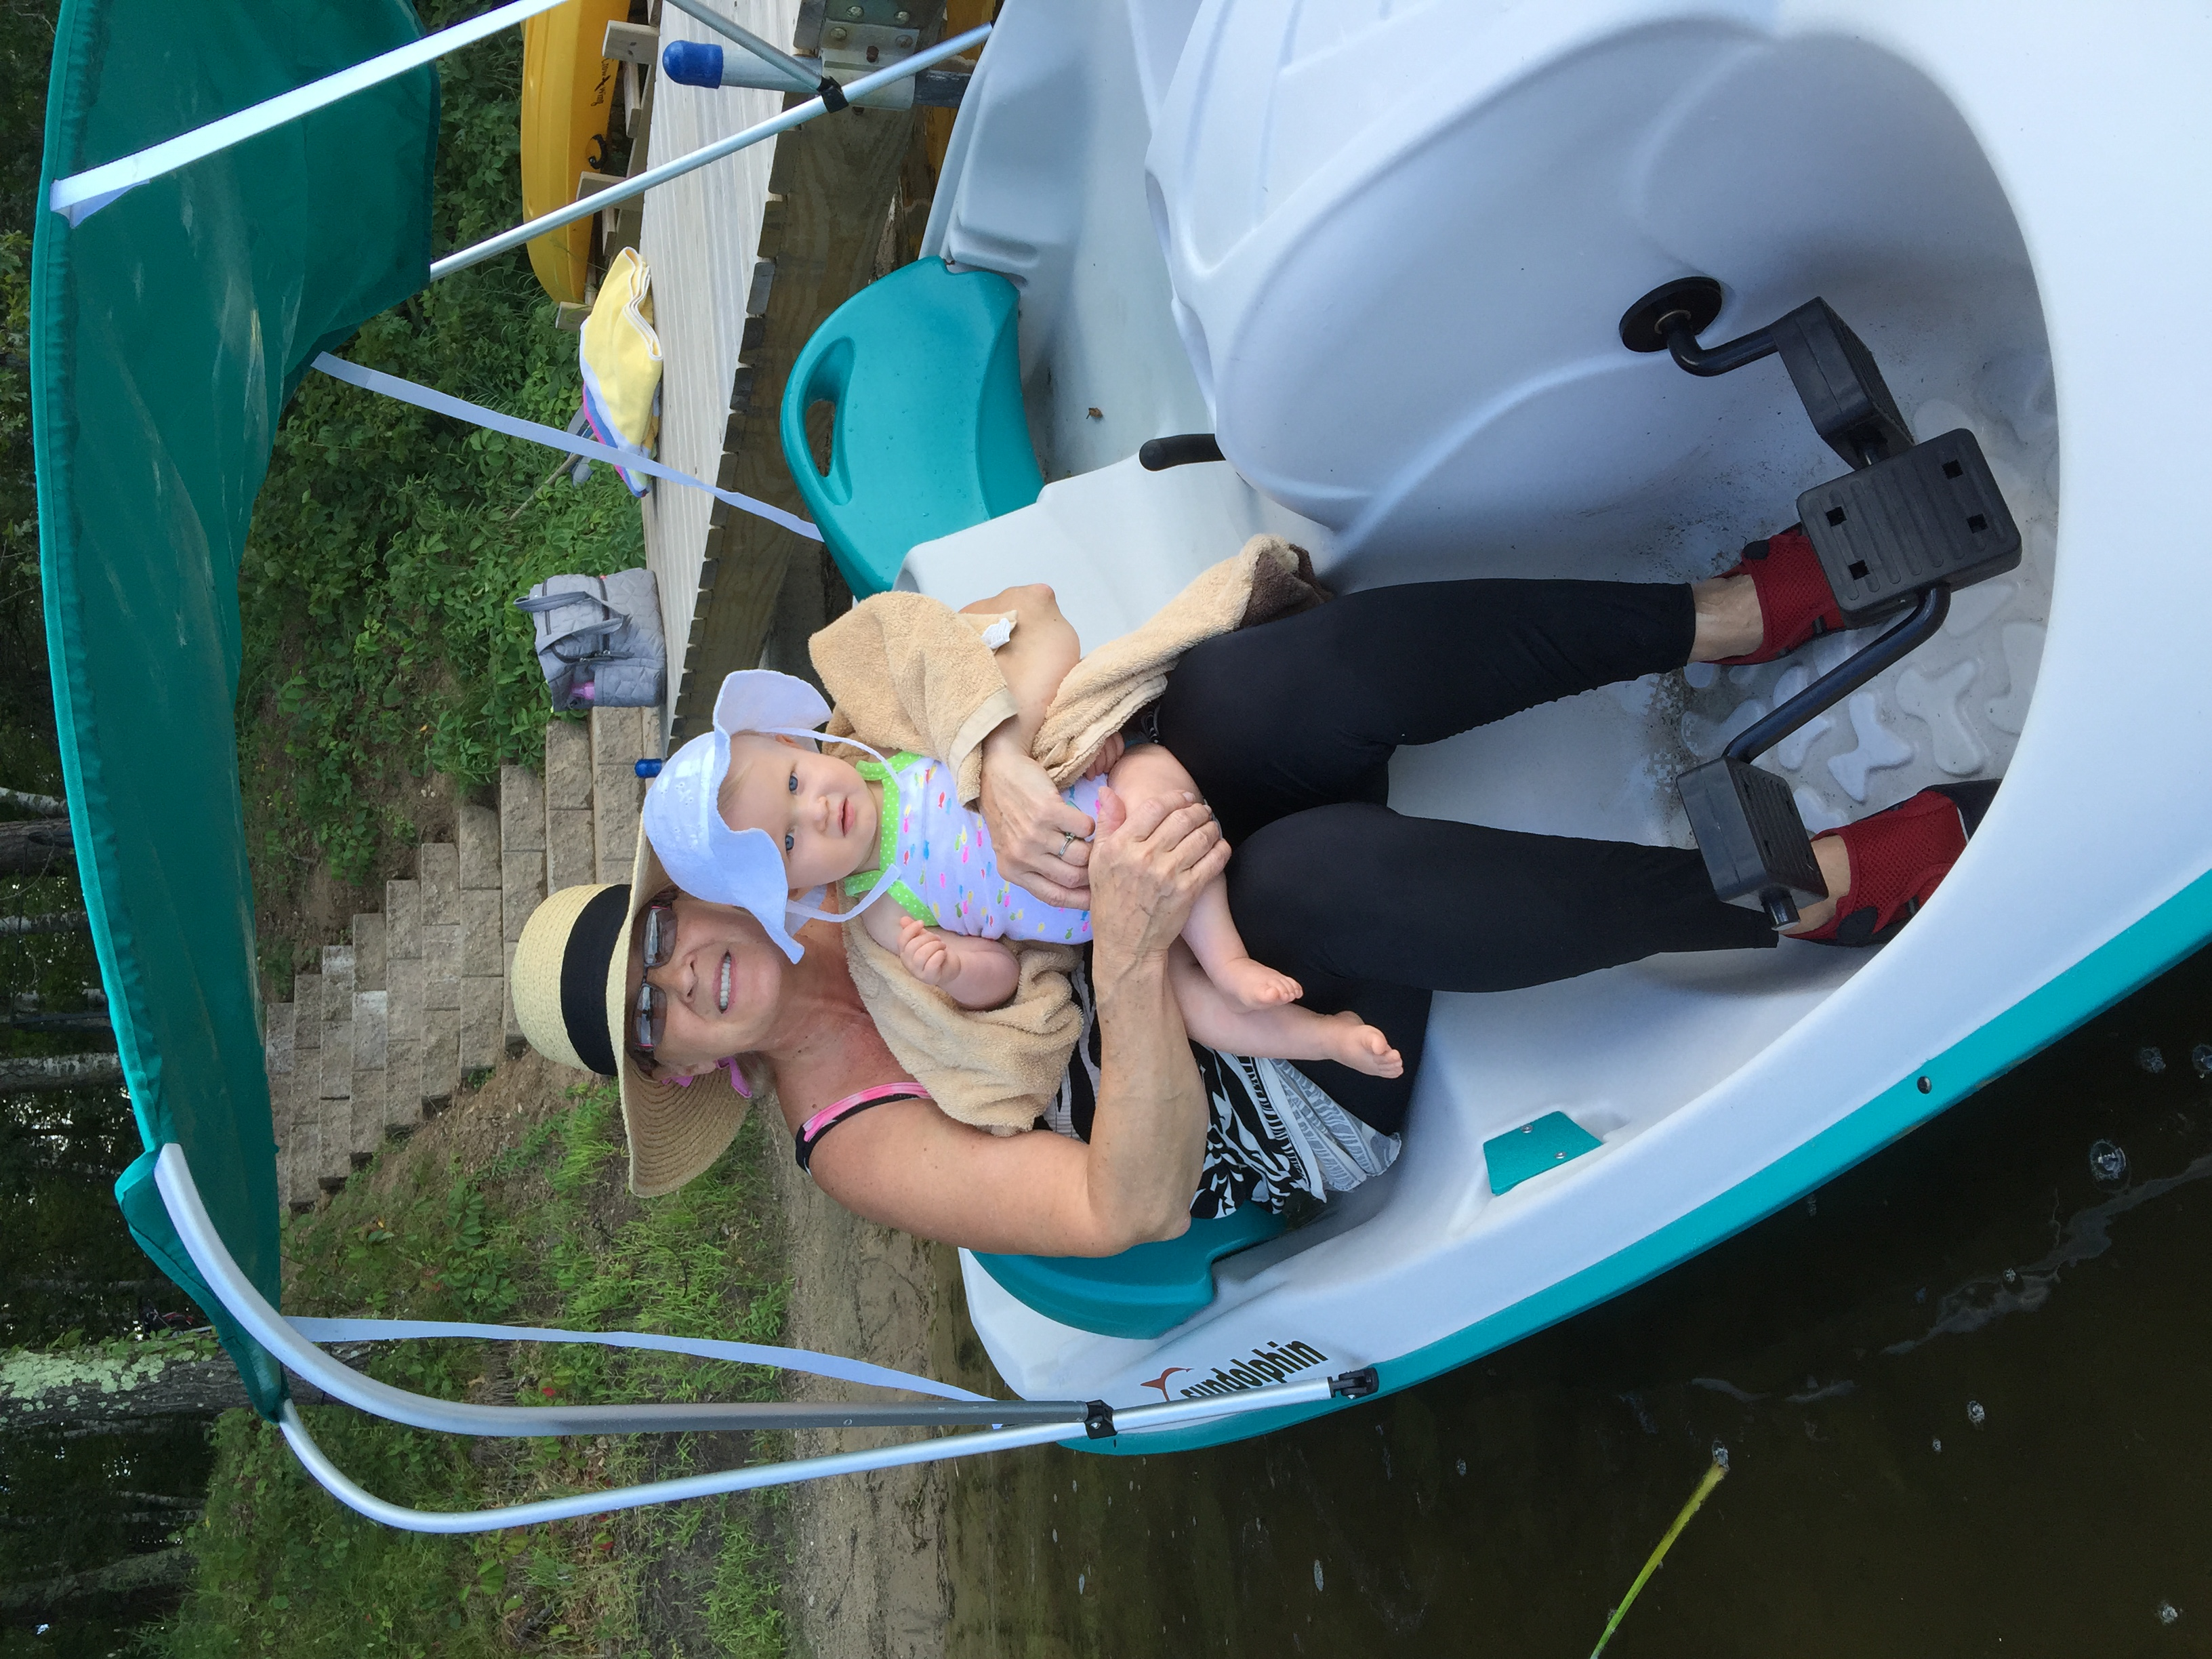 Here's Judy sitting in our new paddle boat with our youngest granddaughter who was visiting with us.